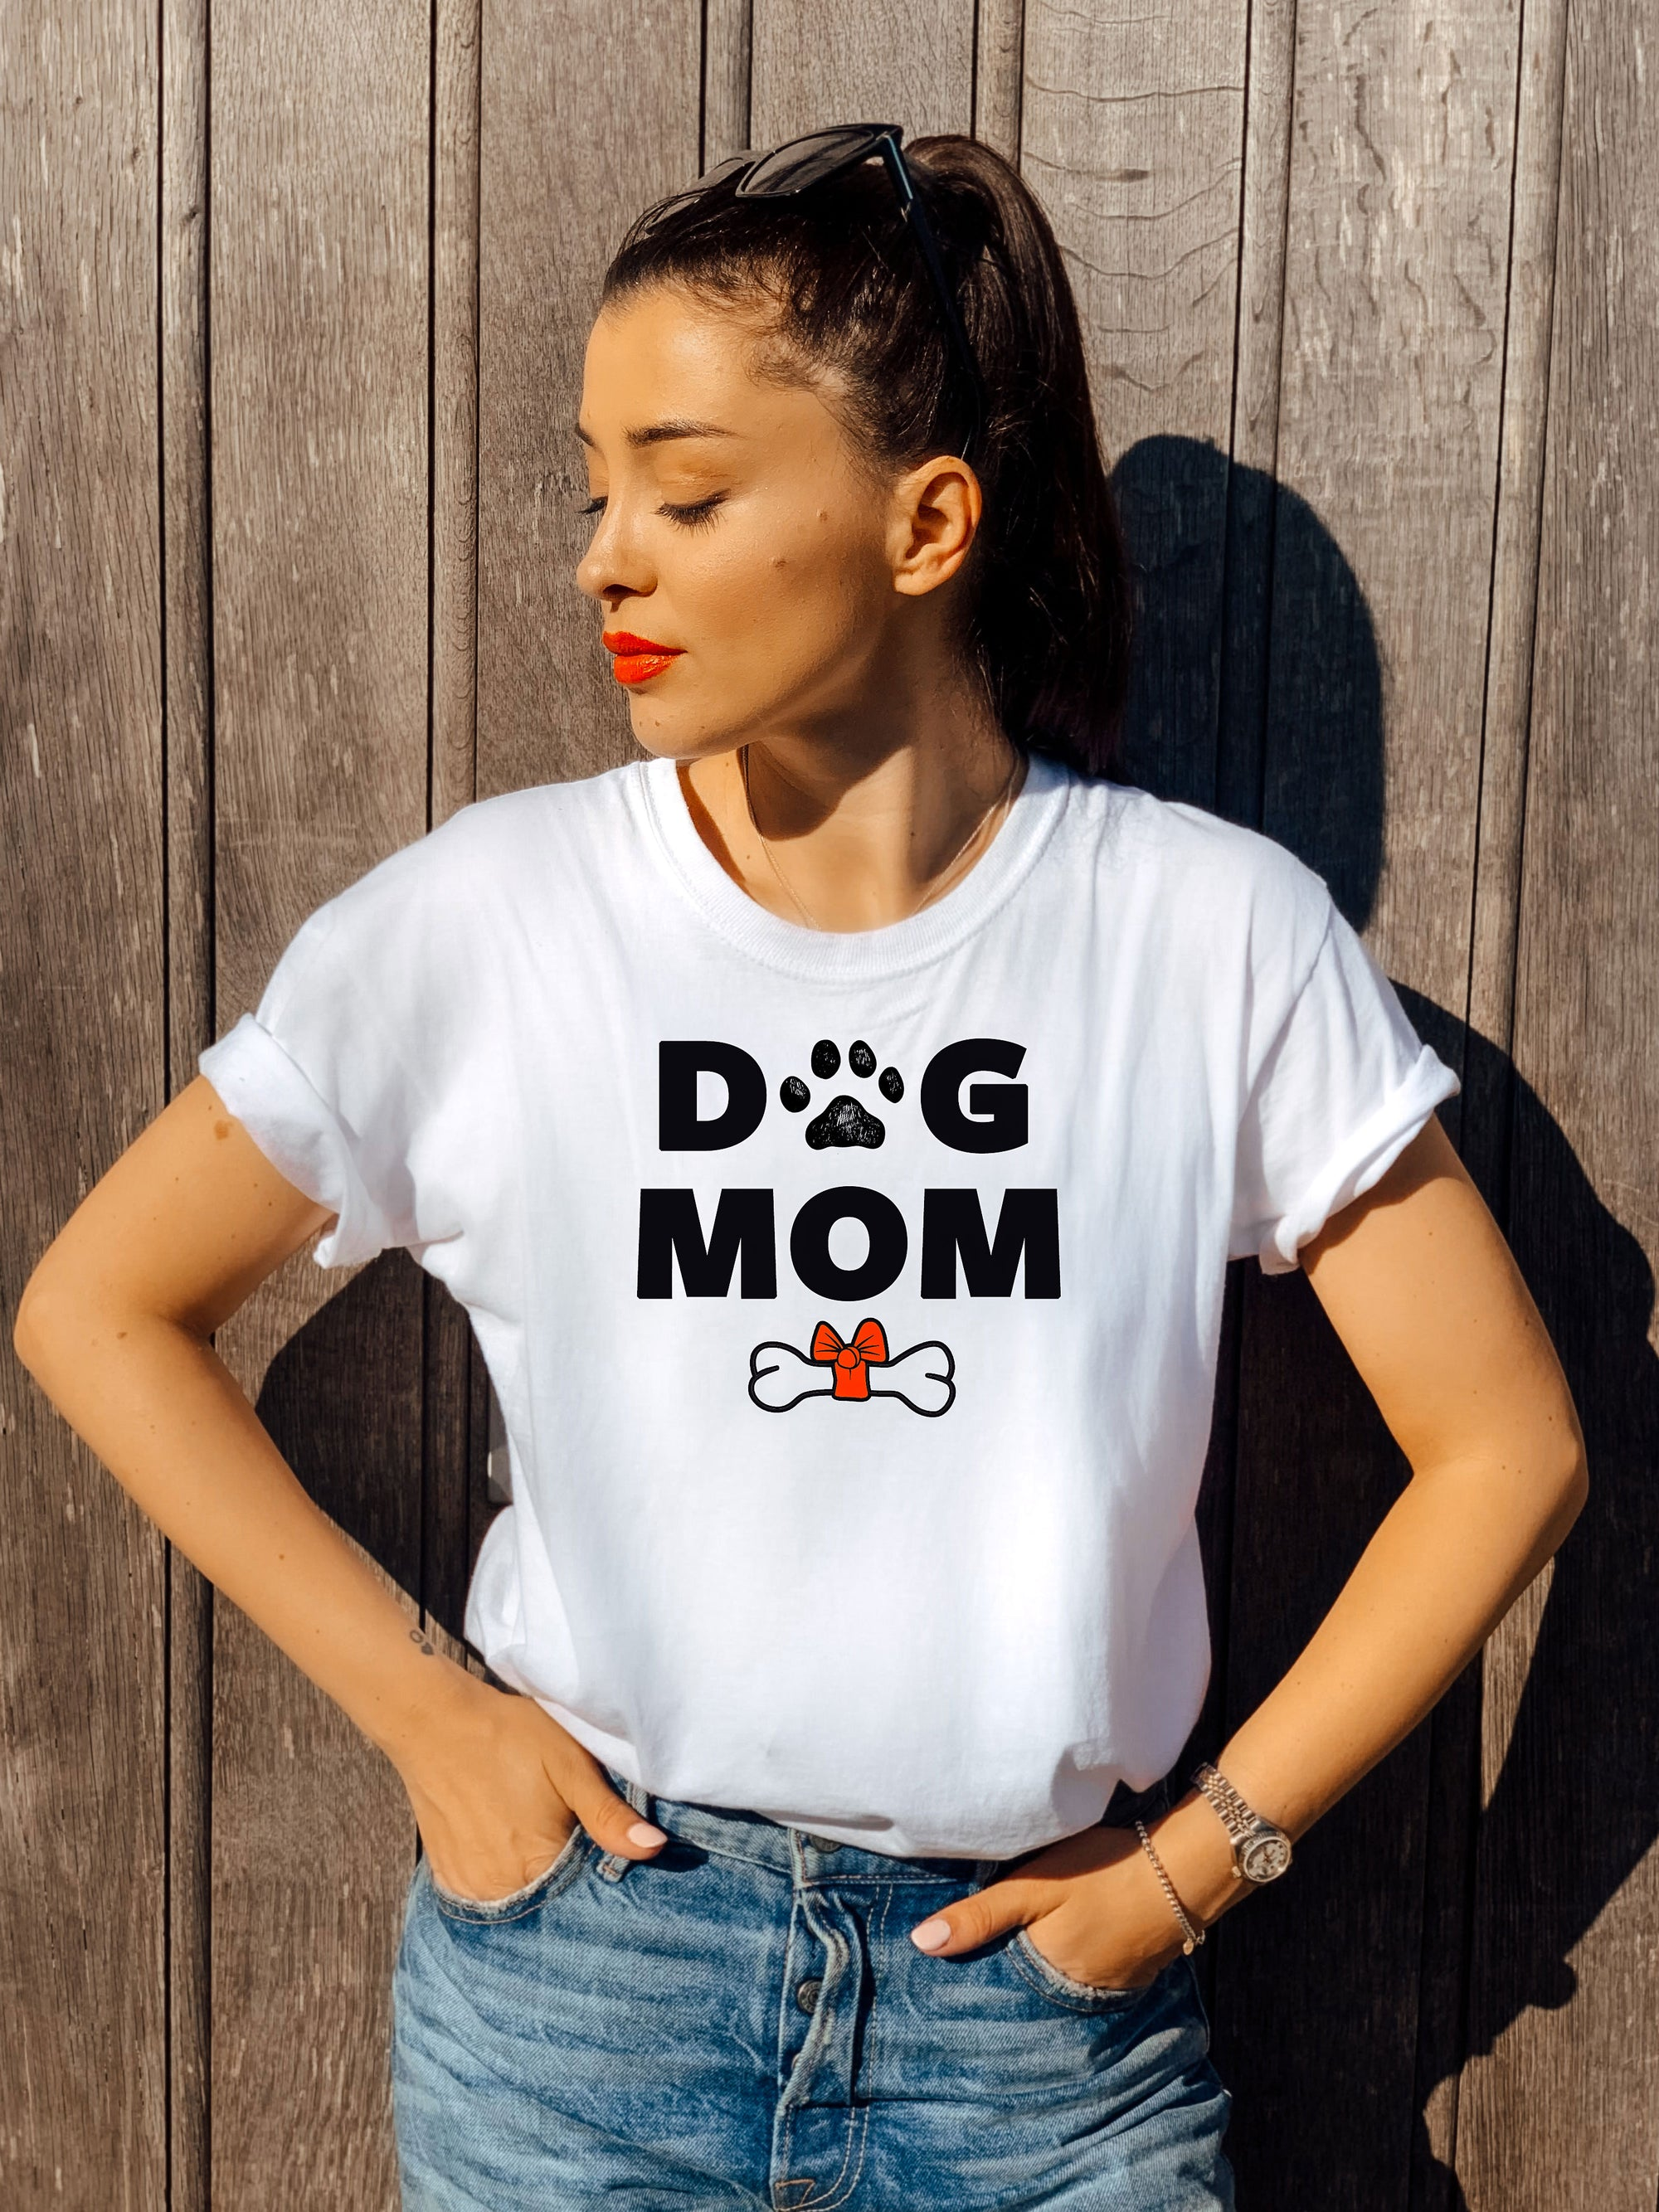 DOG MOM - PREMIUM T-SHIRT